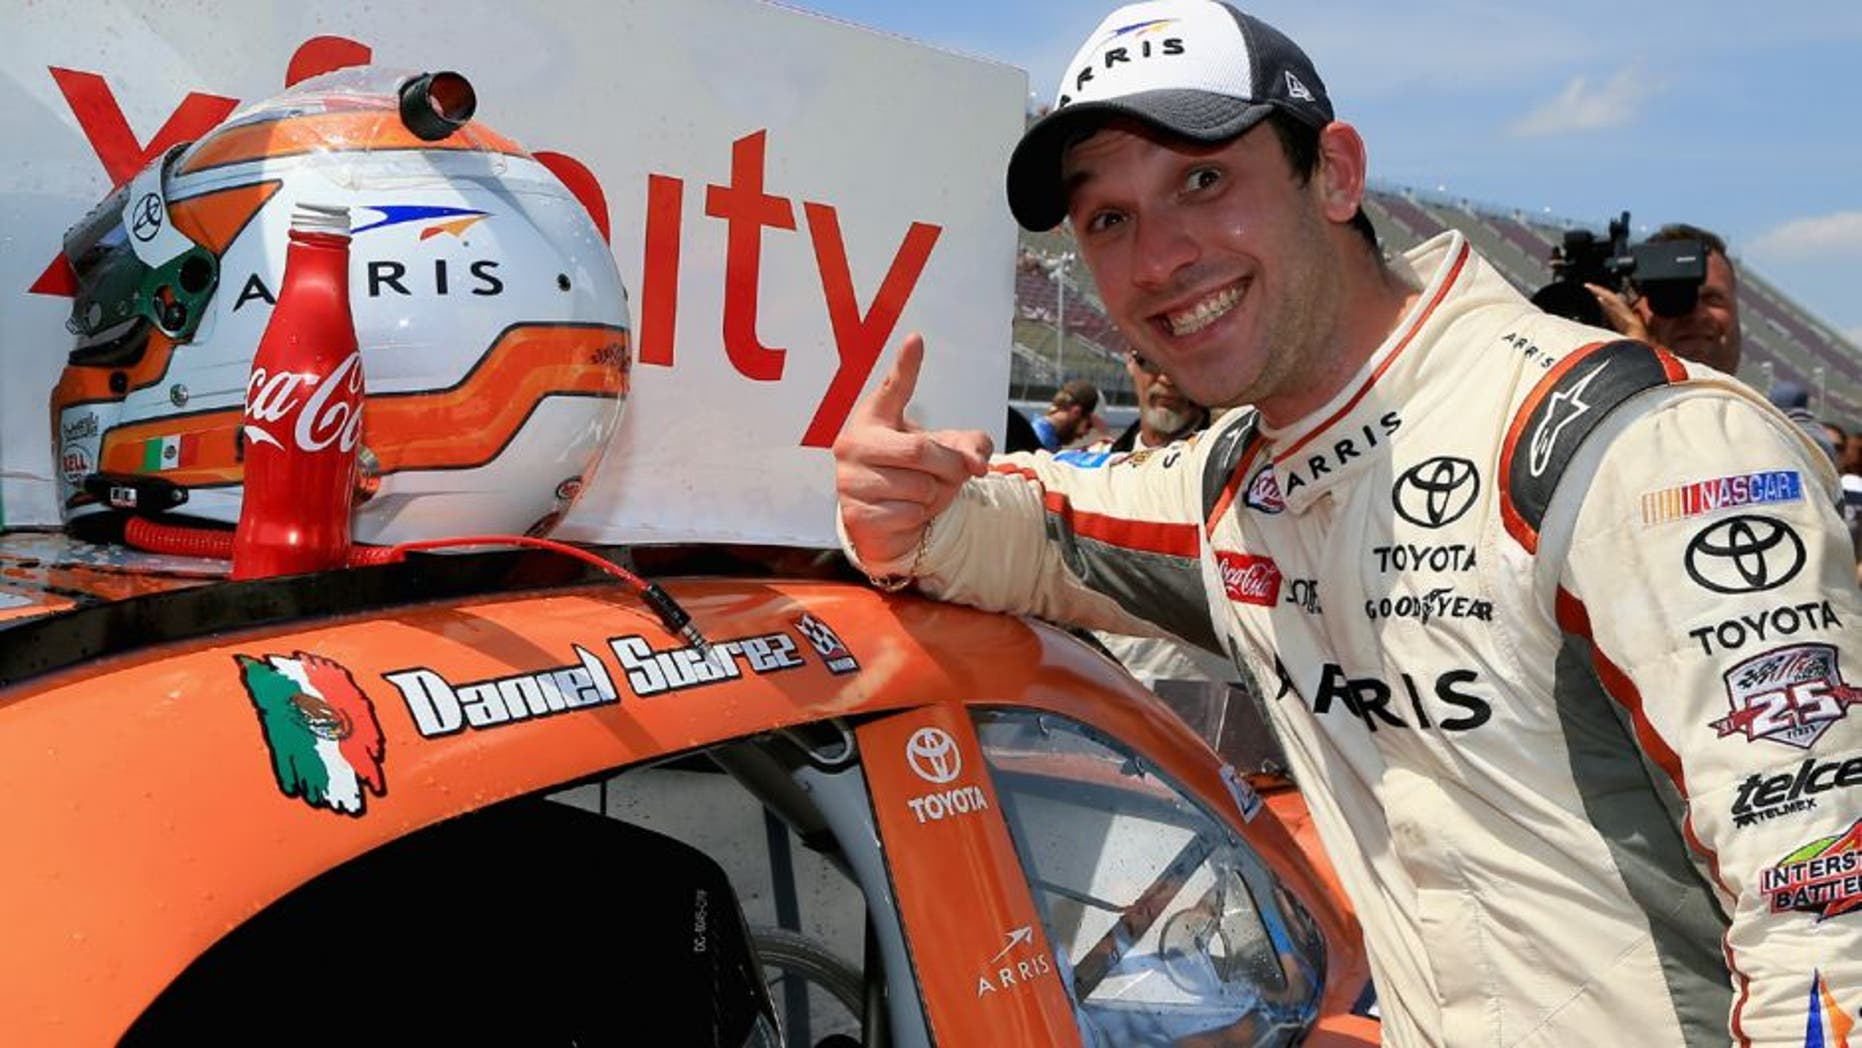 BROOKLYN, MI - JUNE 11: Daniel Suarez, driver of the #19 ARRIS Toyota, places a winner's sticker decal on his car after winning the NASCAR XFINITY Series Menards 250 at Michigan International Speedway on June 11, 2016 in Brooklyn, Michigan. (Photo by Daniel Shirey/NASCAR via Getty Images)